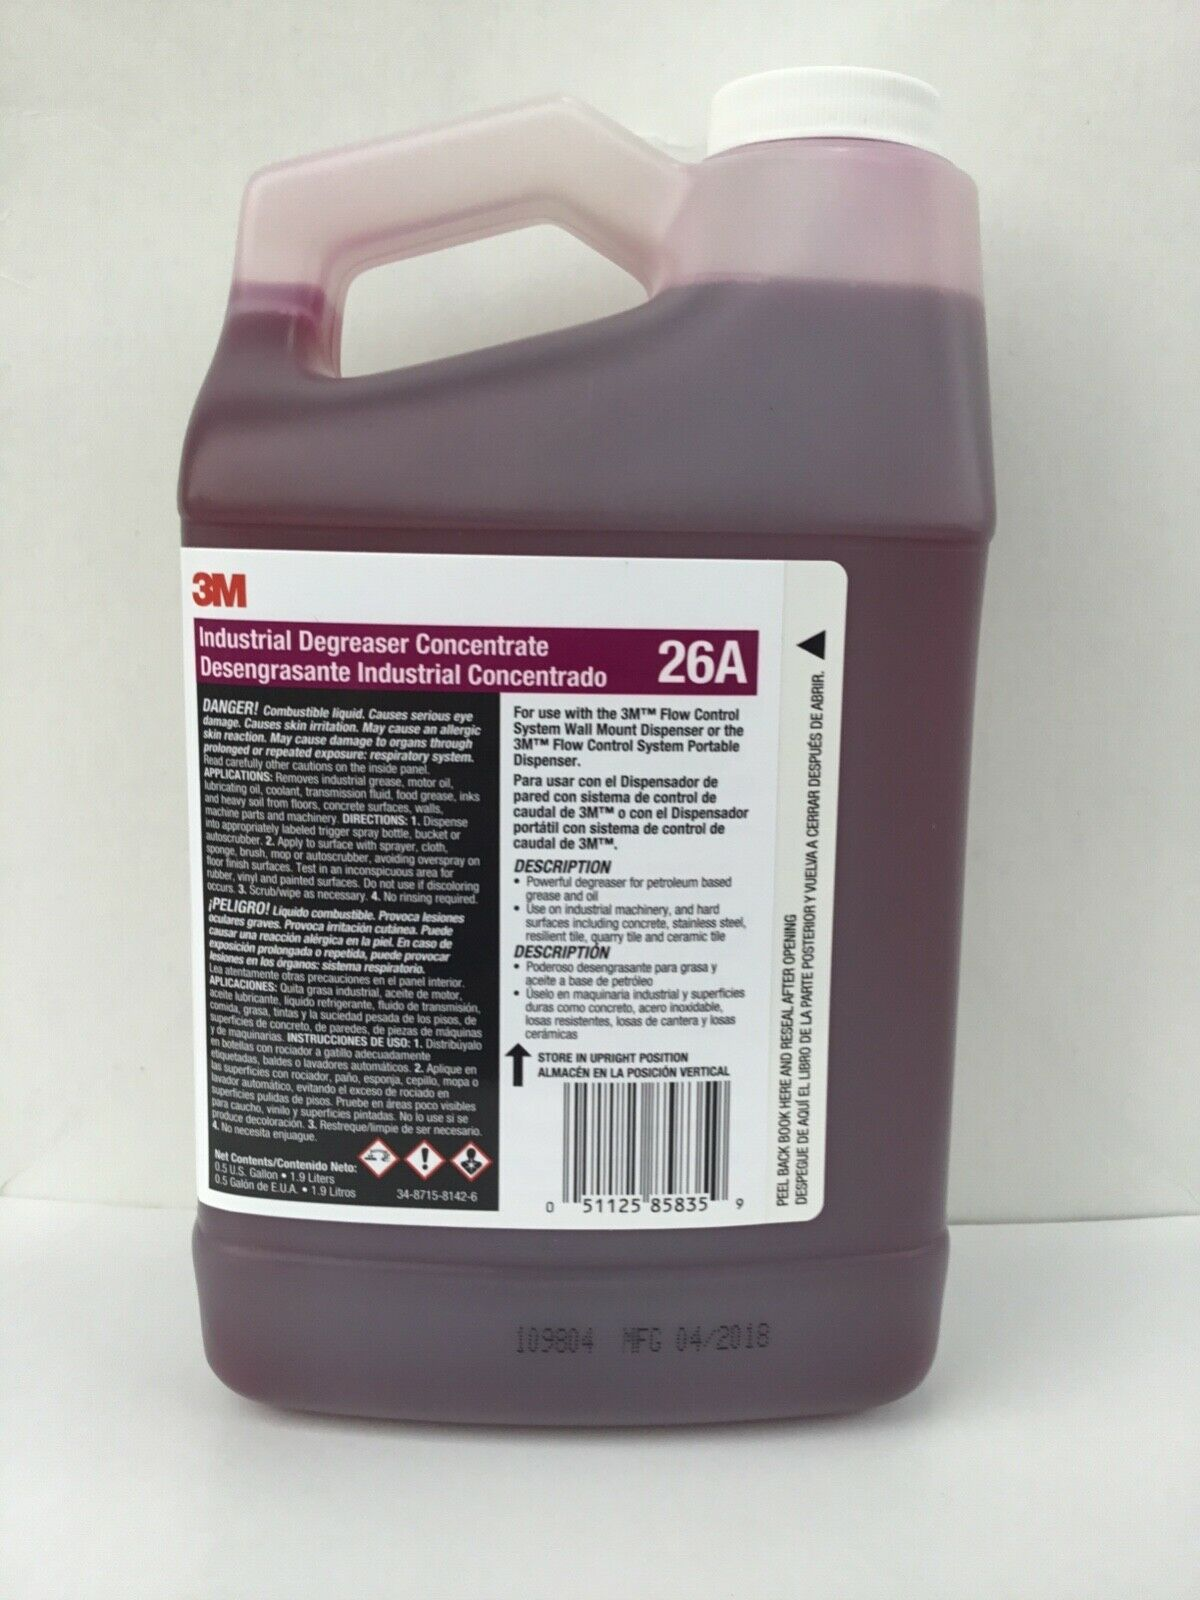 3M Industrial Degreaser concentrate 1.9L,Red,Mild Fresh